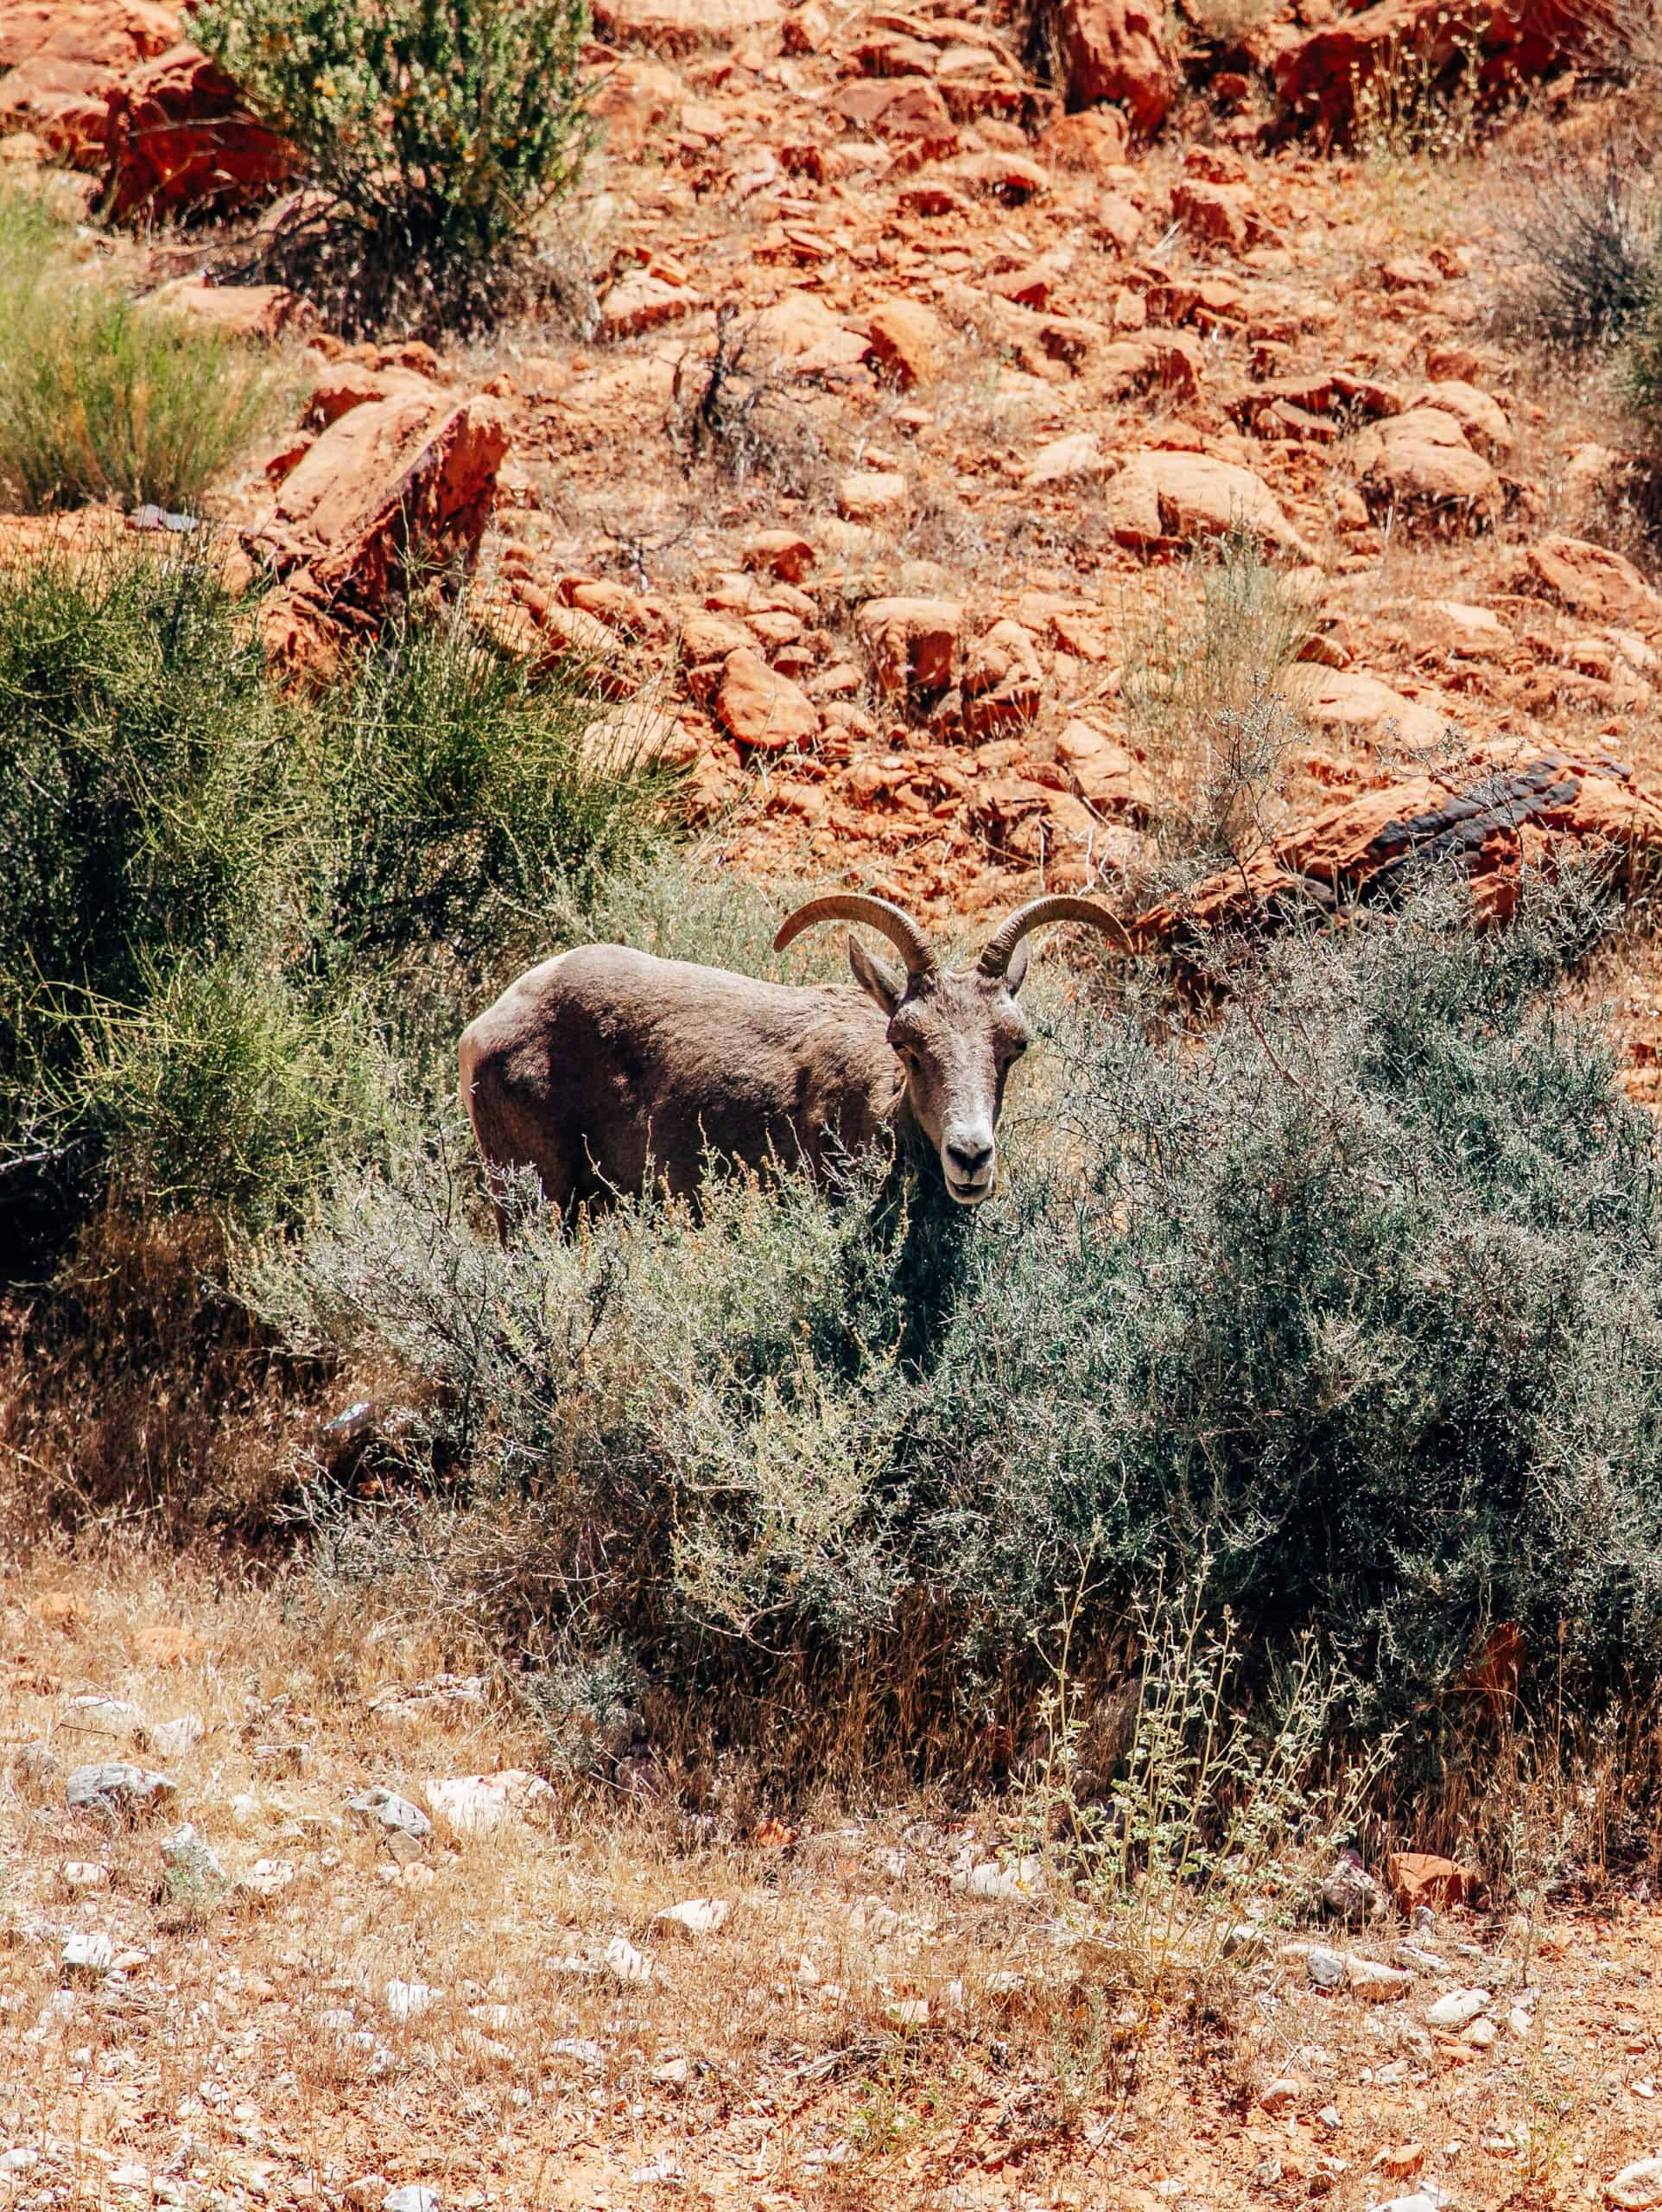 Wildlife at Valley of Fire State Park